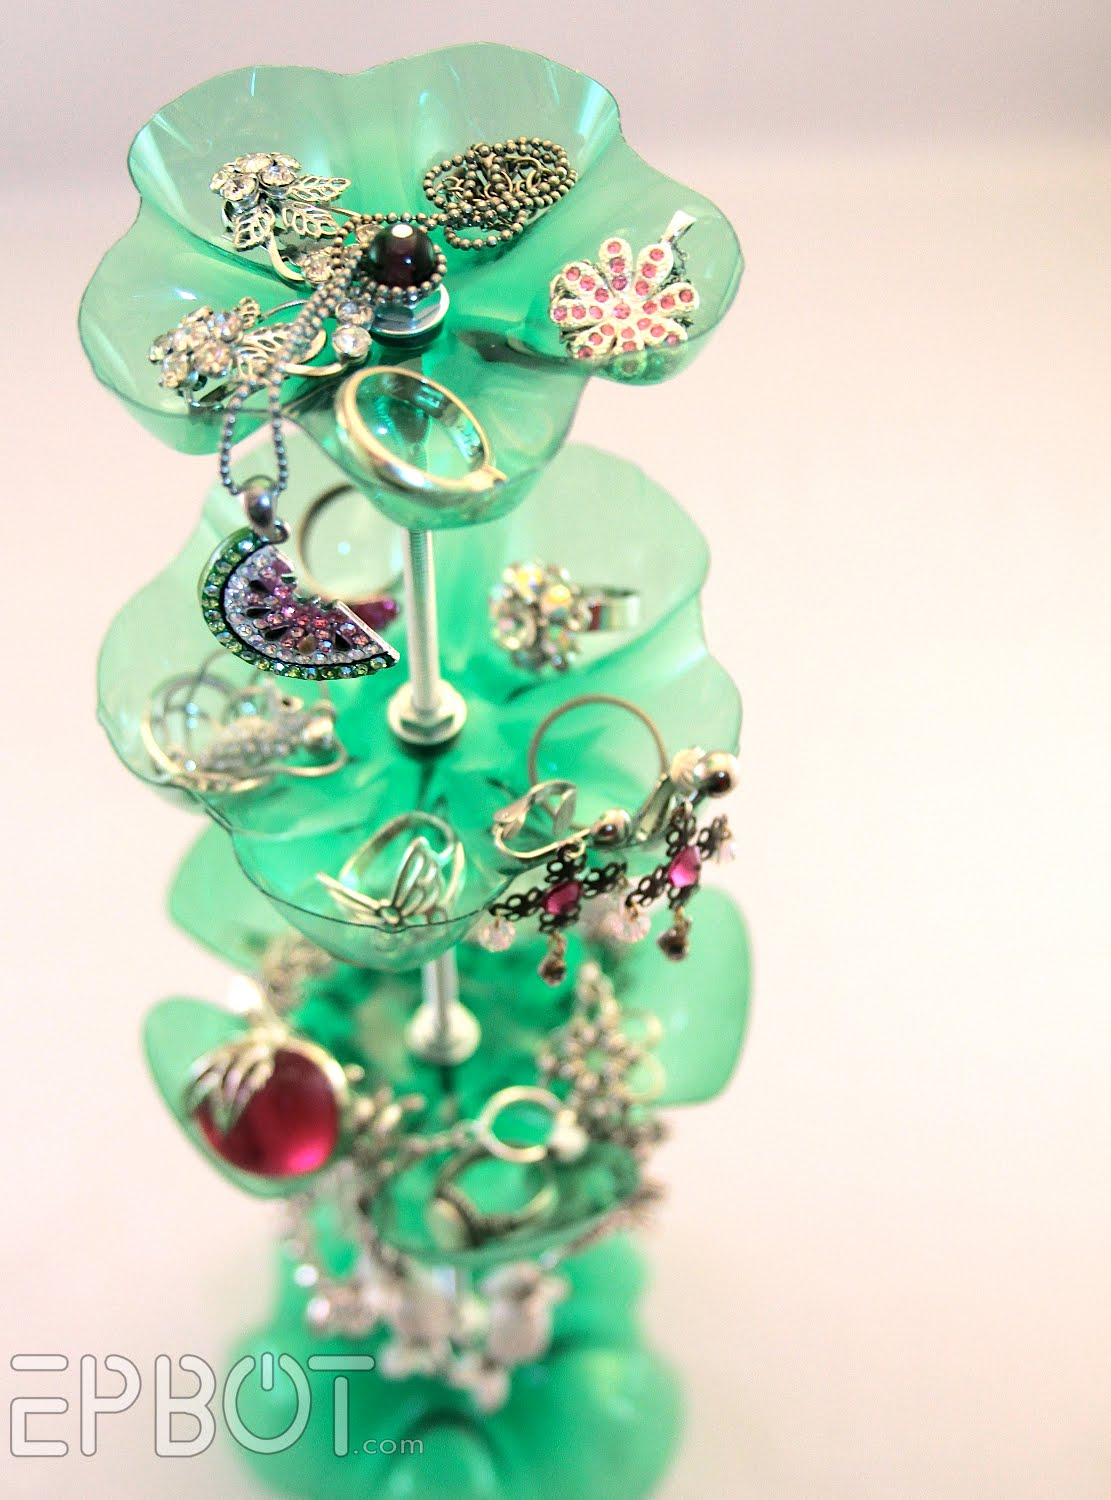 Epbot dew it yourself jewelry stand for Diy recycled plastic bottles